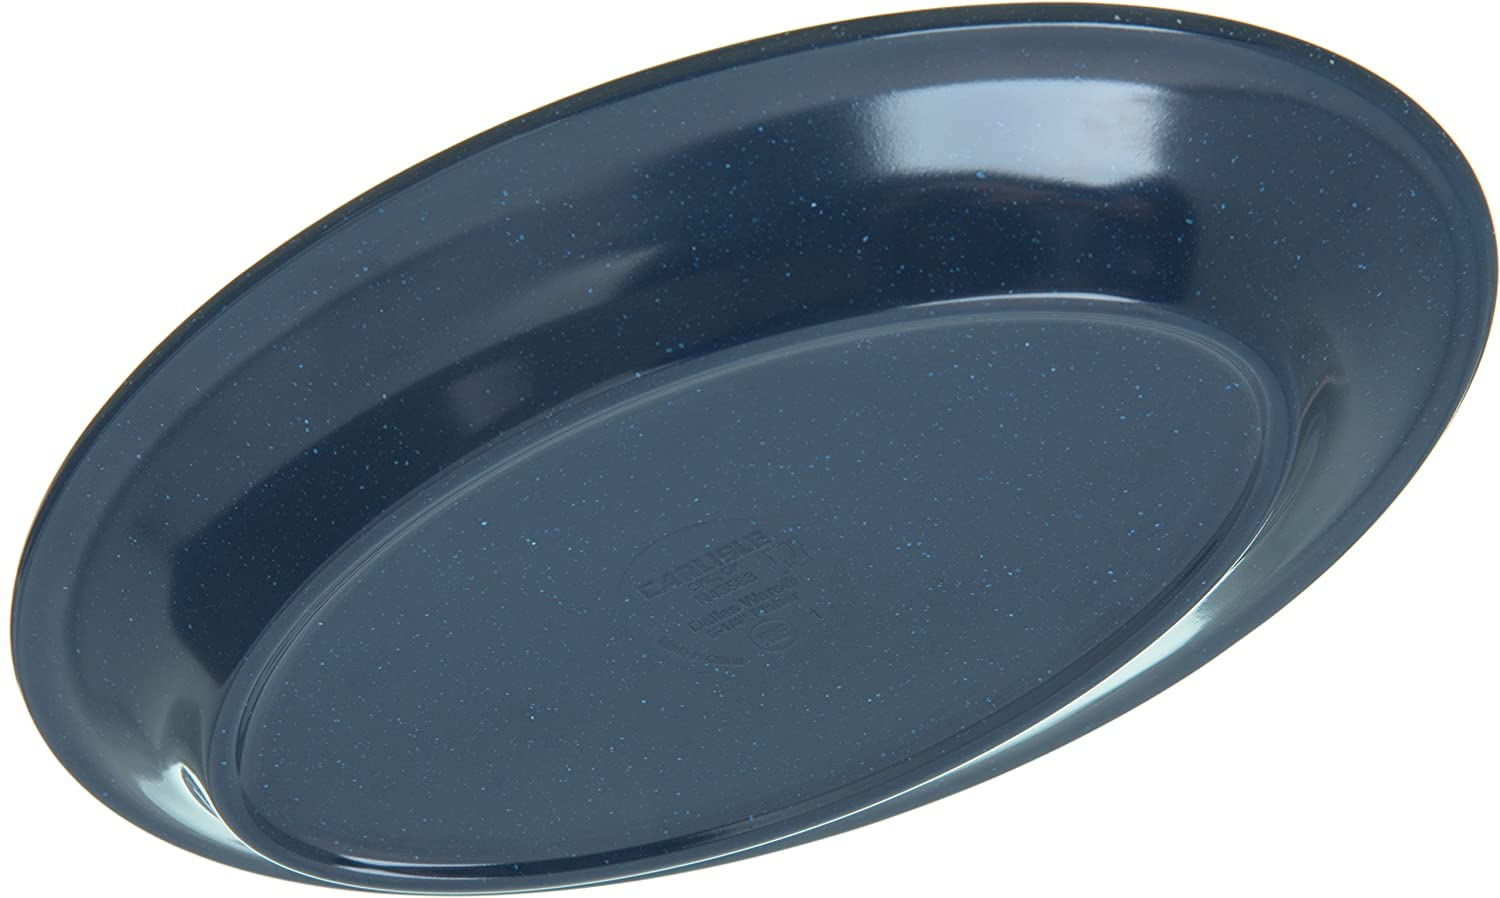 Pack of 24 9.25 x 6.25 Carlisle FoodService Products 43563-35 Caf/é Blue Carlisle 4356335 Dallas Ware Melamine Oval Platter Tray 9.25 x 6.25